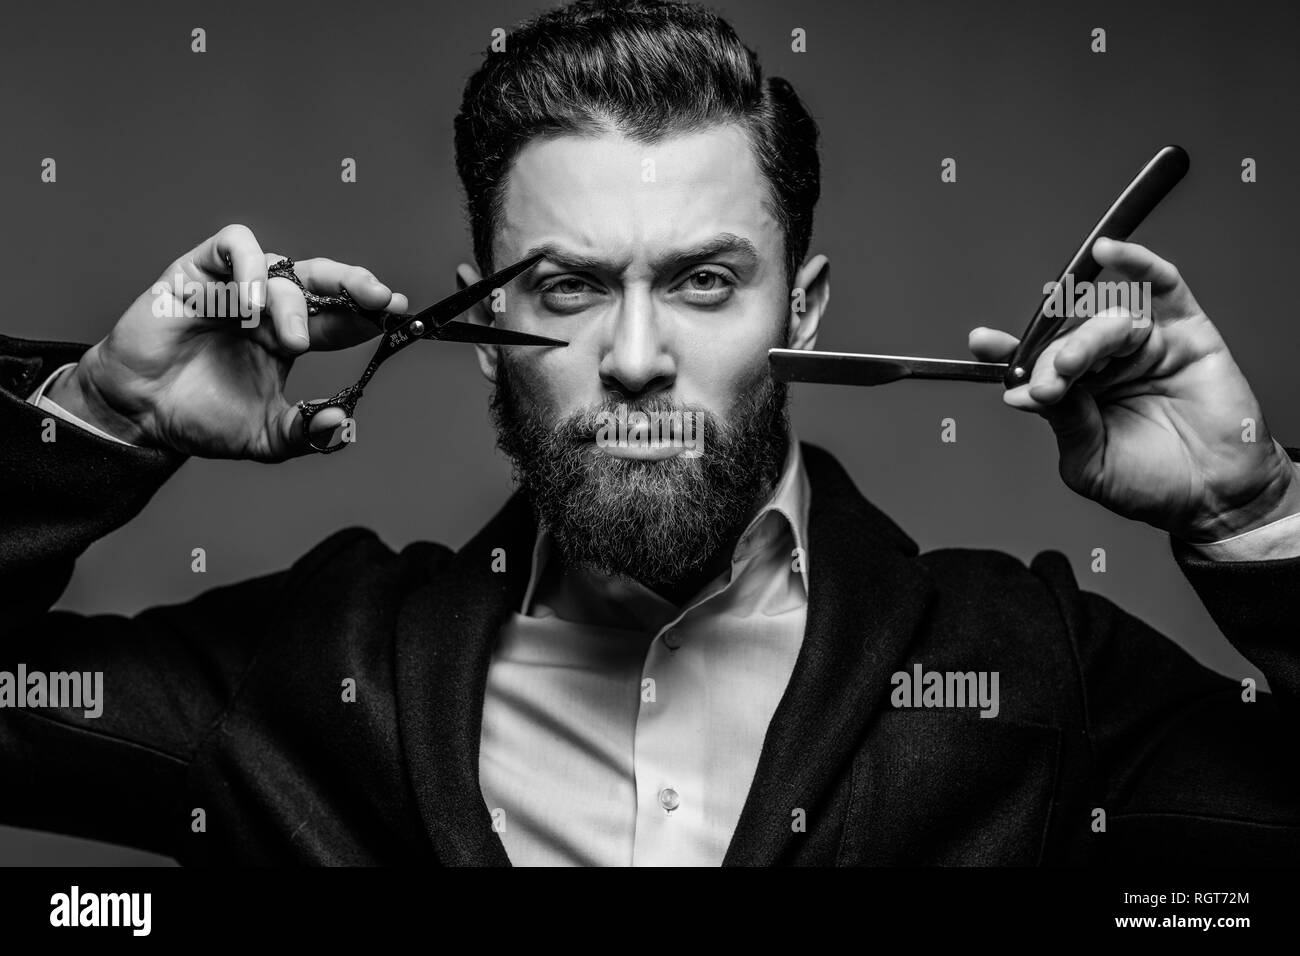 Hairdresser Hair Cut Tattoo High Resolution Stock Photography And Images Alamy